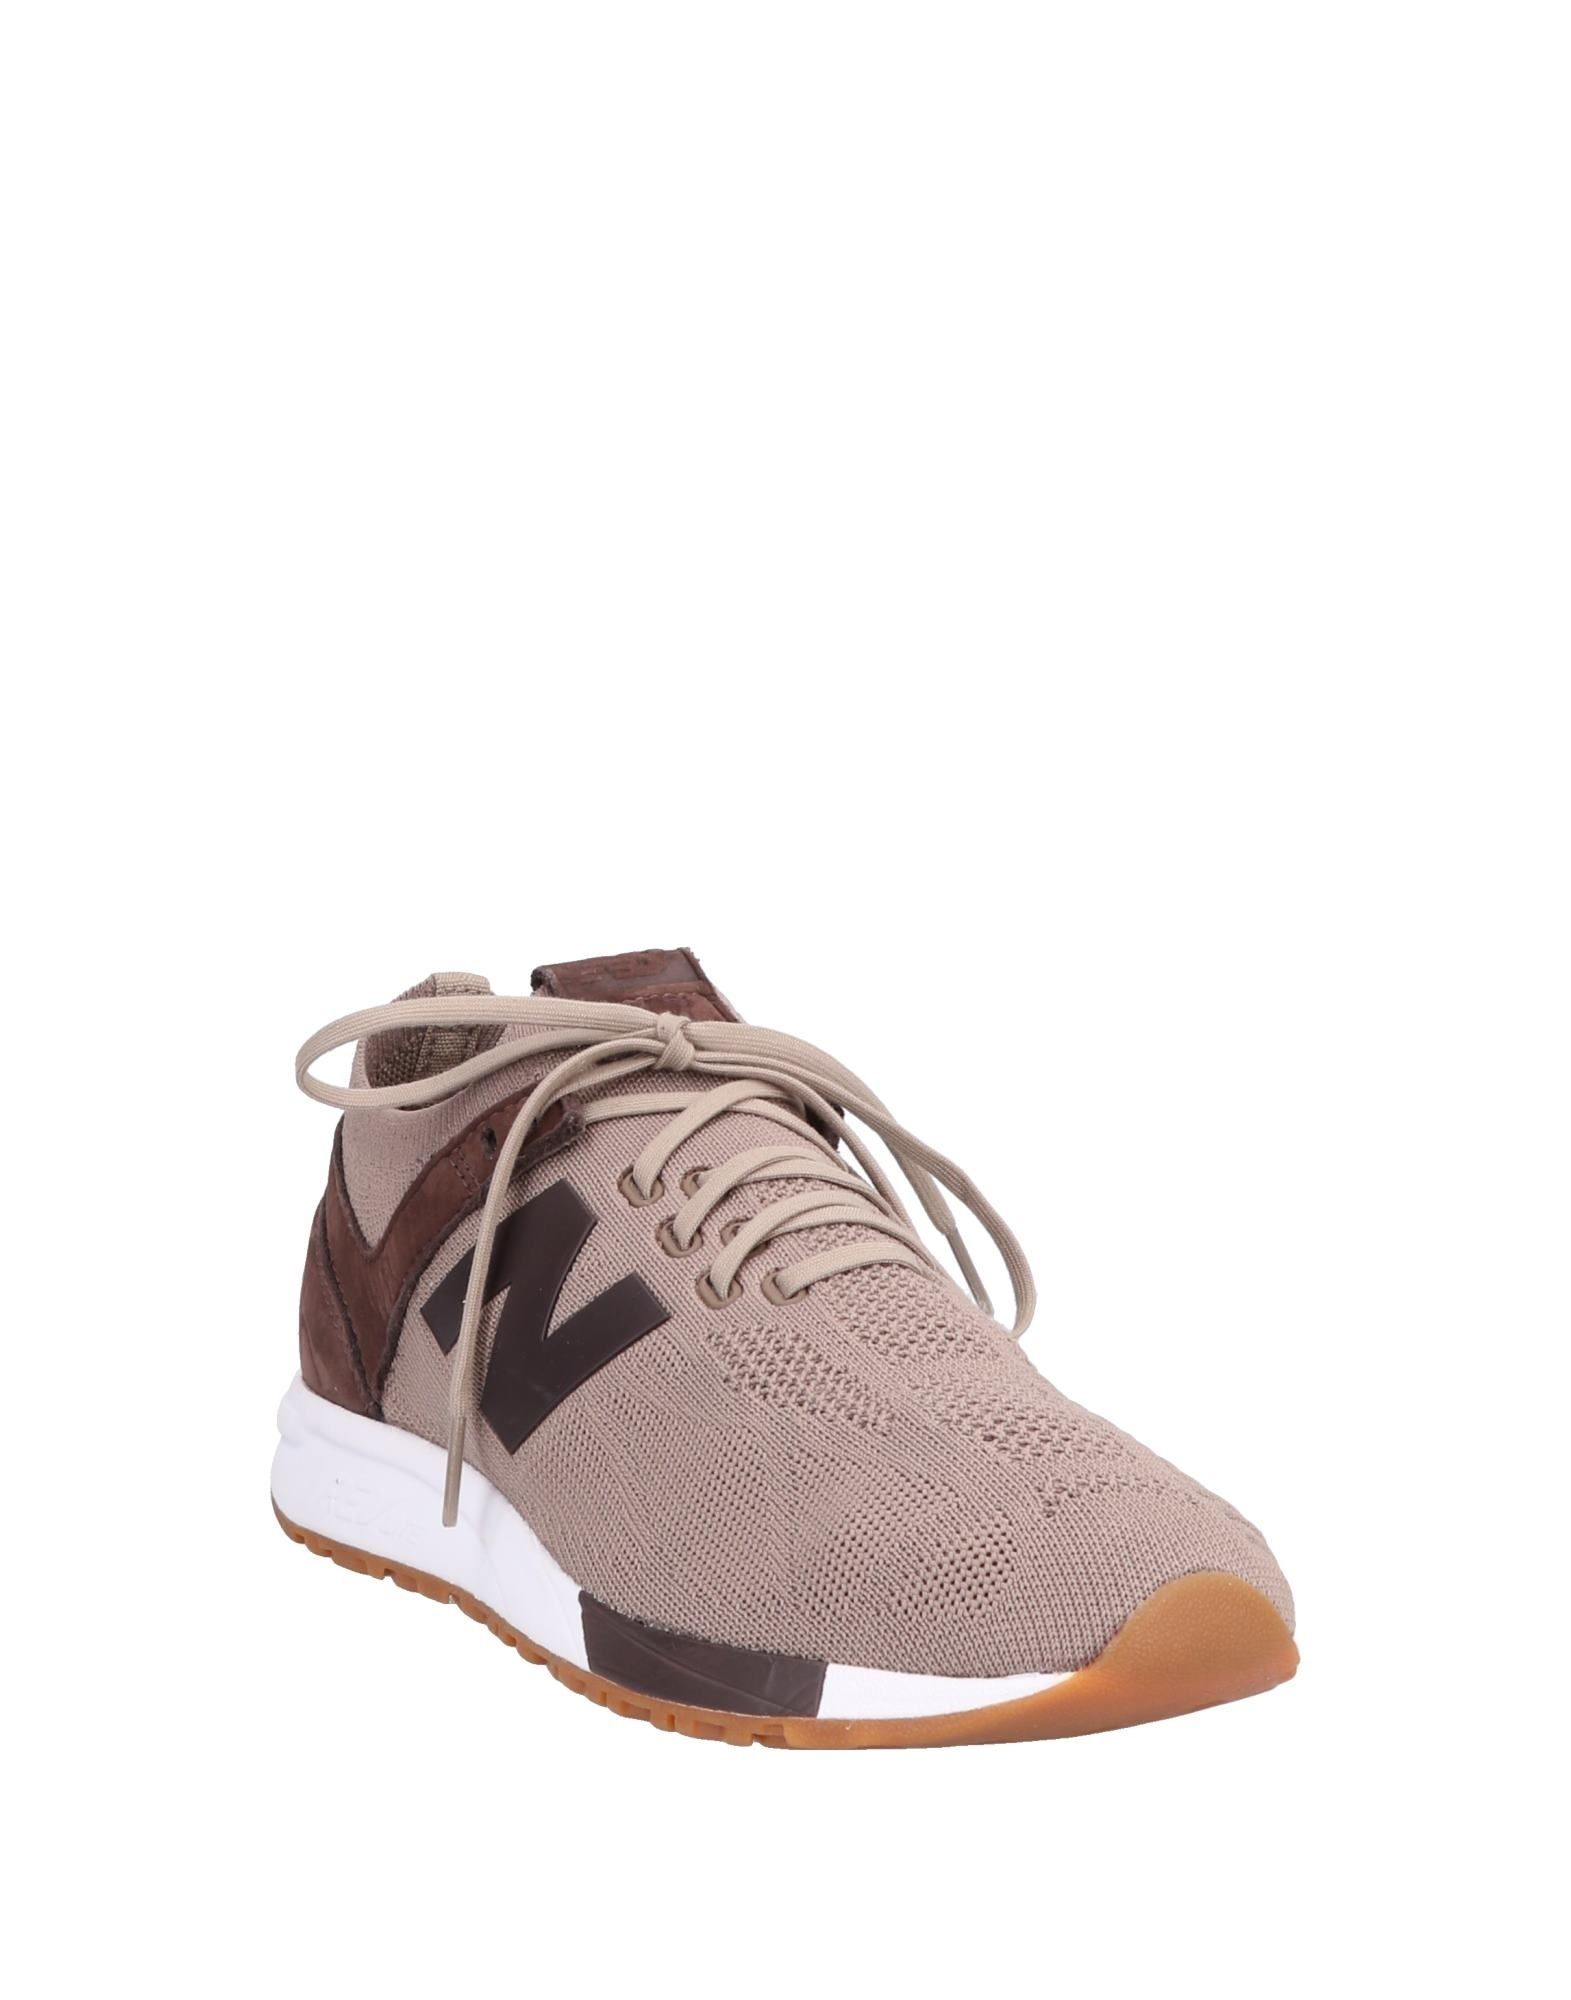 New Balance Sneakers Sneakers - Men New Balance Sneakers Sneakers online on  Australia - 11571687CH f741a7